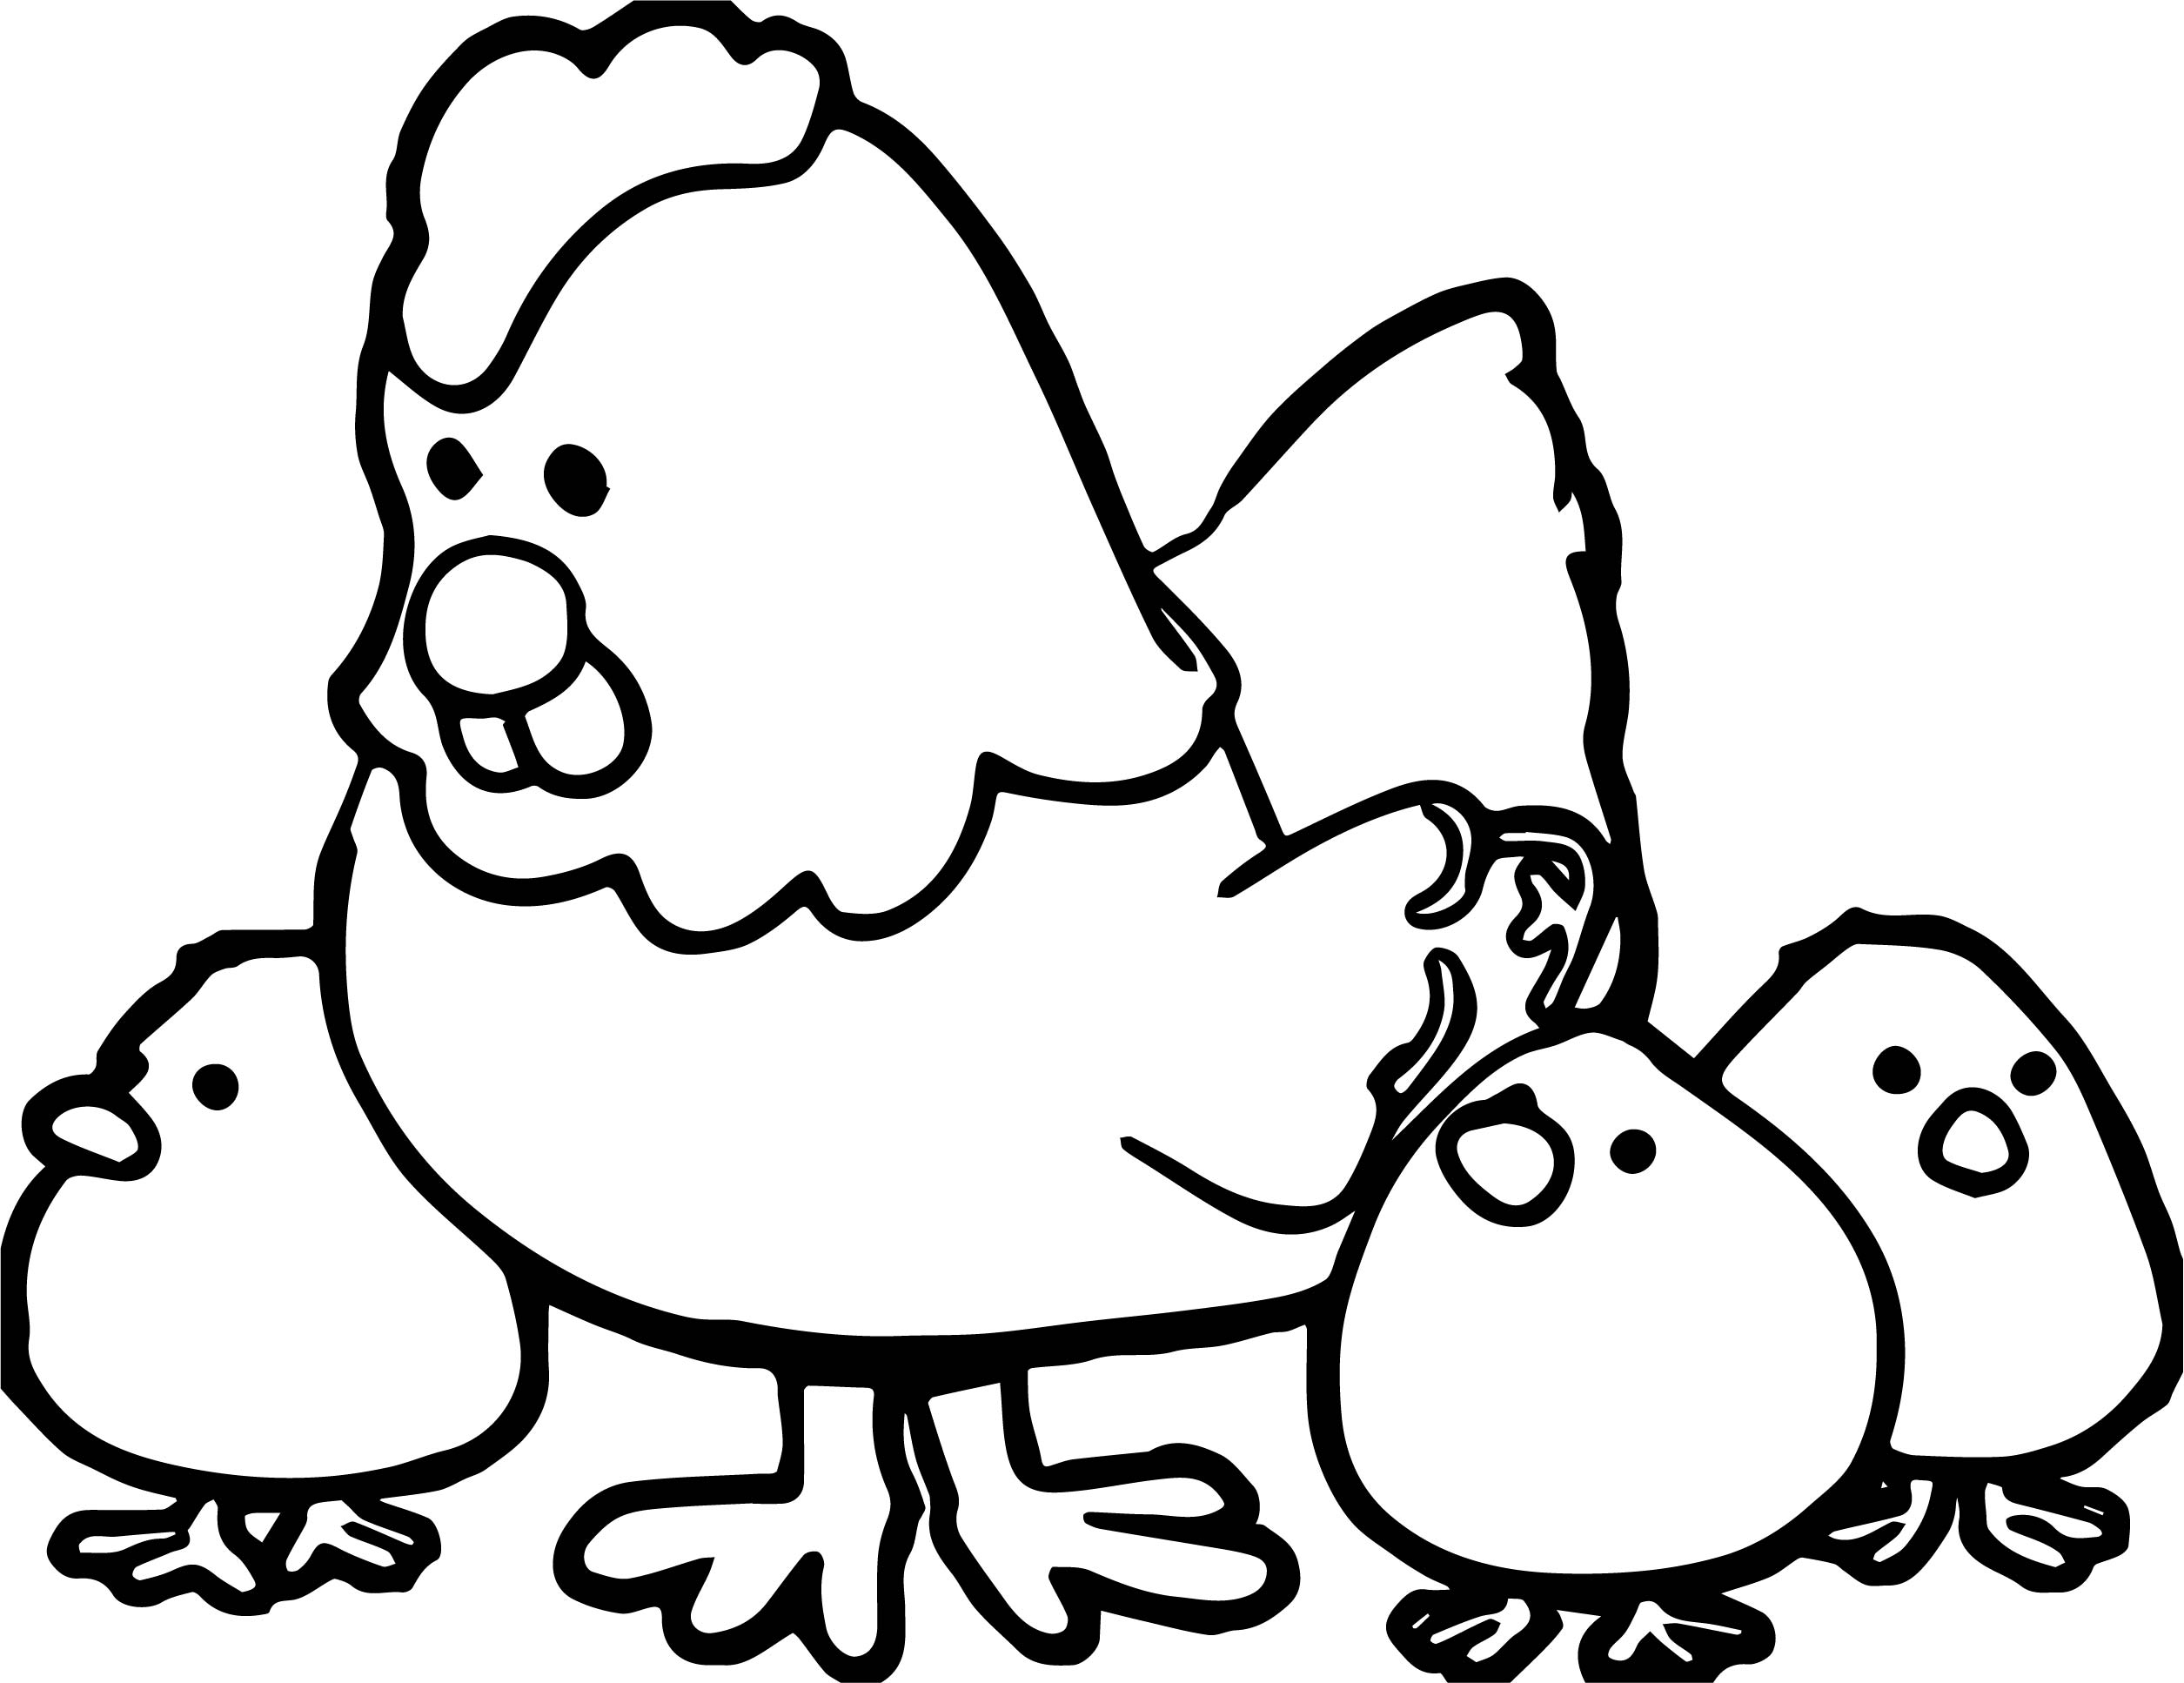 Hen With Chicks Family Coloring Page Wecoloringpage